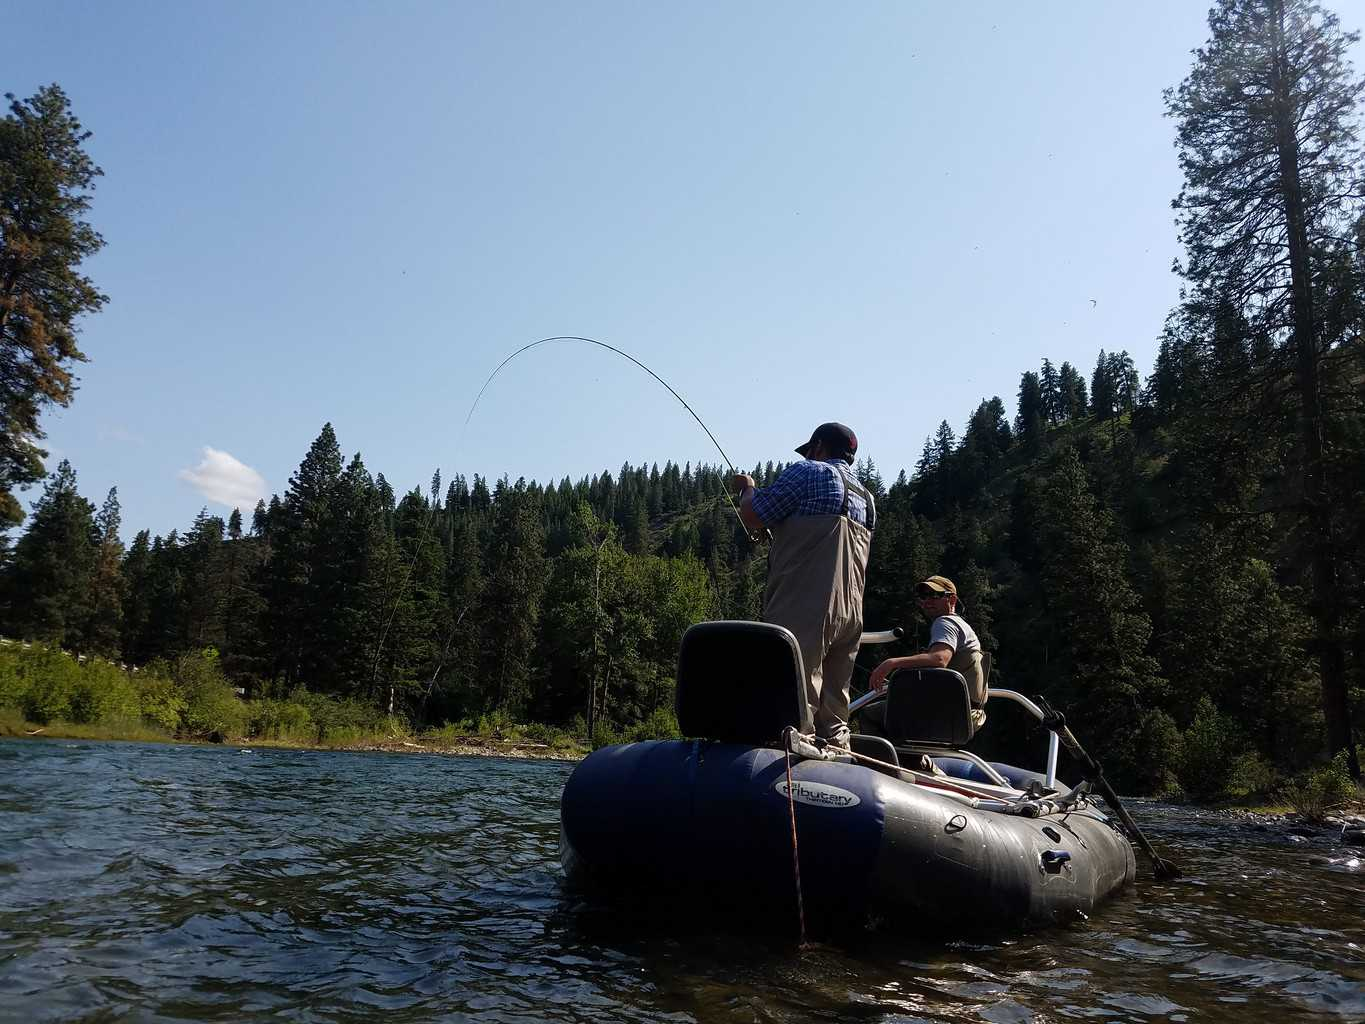 Anglers on a boat fly fishing and fighting a trout on the Naches River.